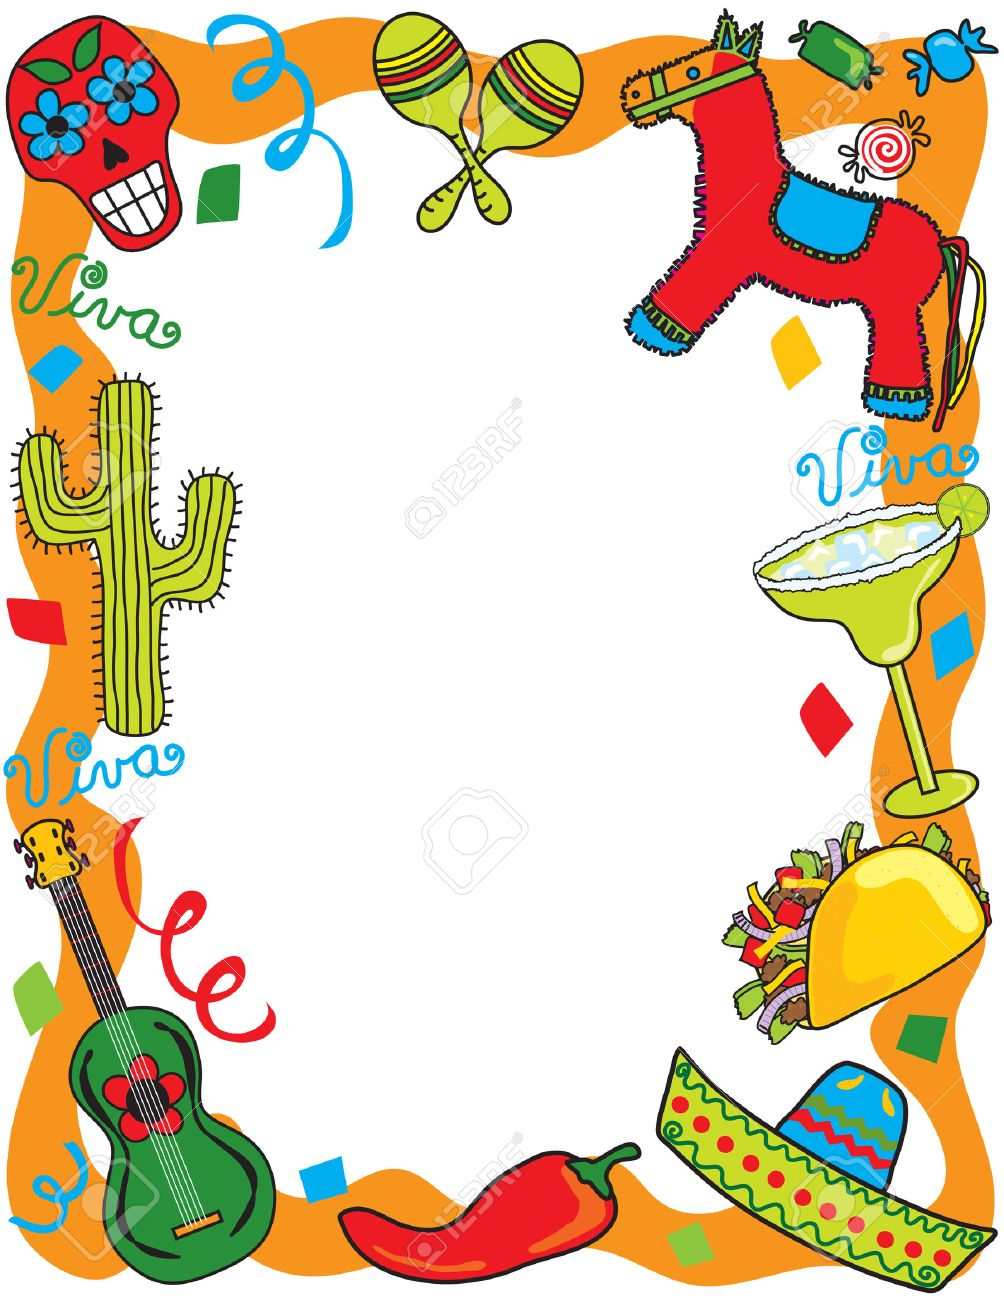 Mexican Fiesta Party Invitation Royalty Free Cliparts, Vectors, And ...